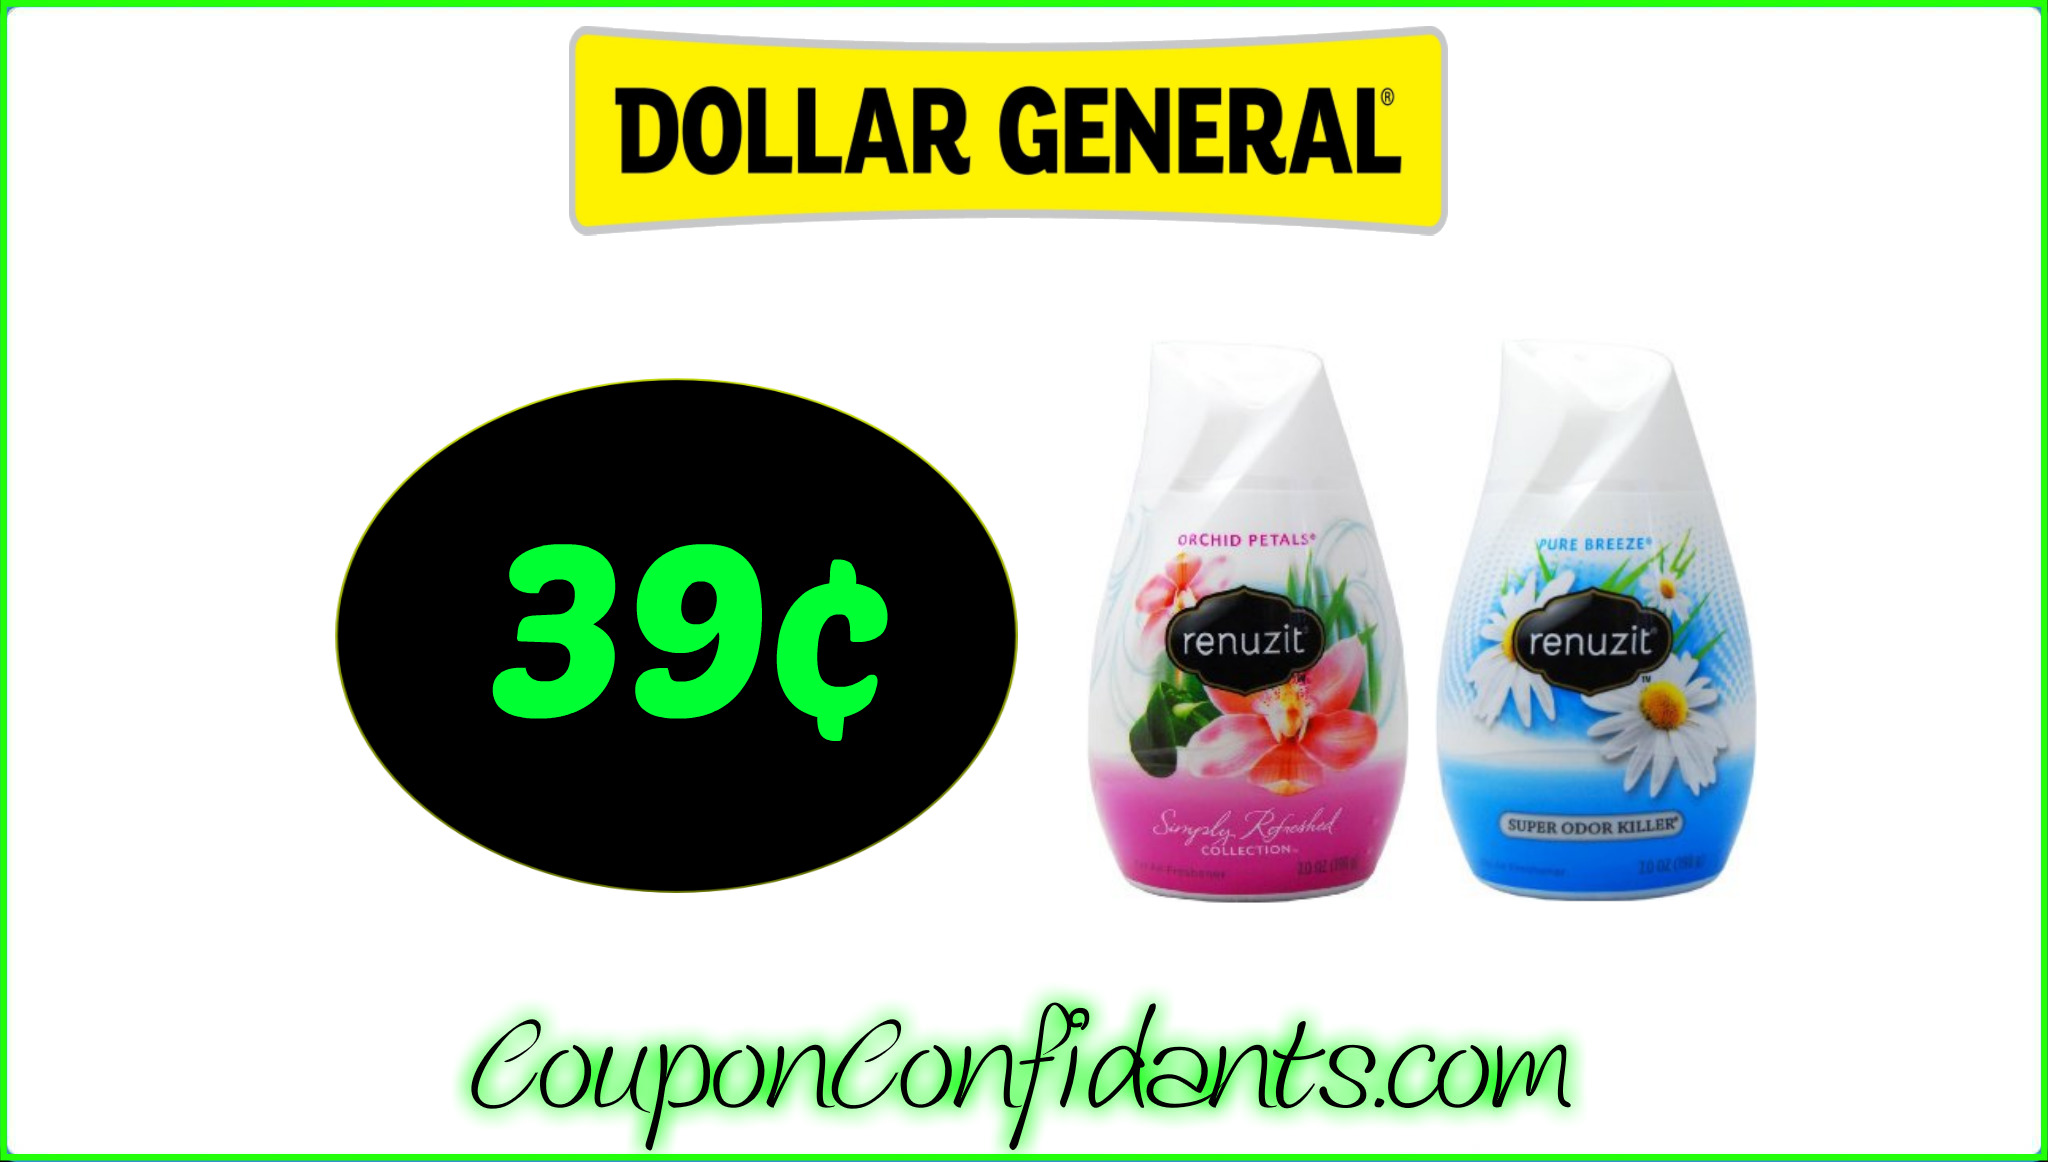 Renuzit Cones for only 39¢ at Dollar General!!!